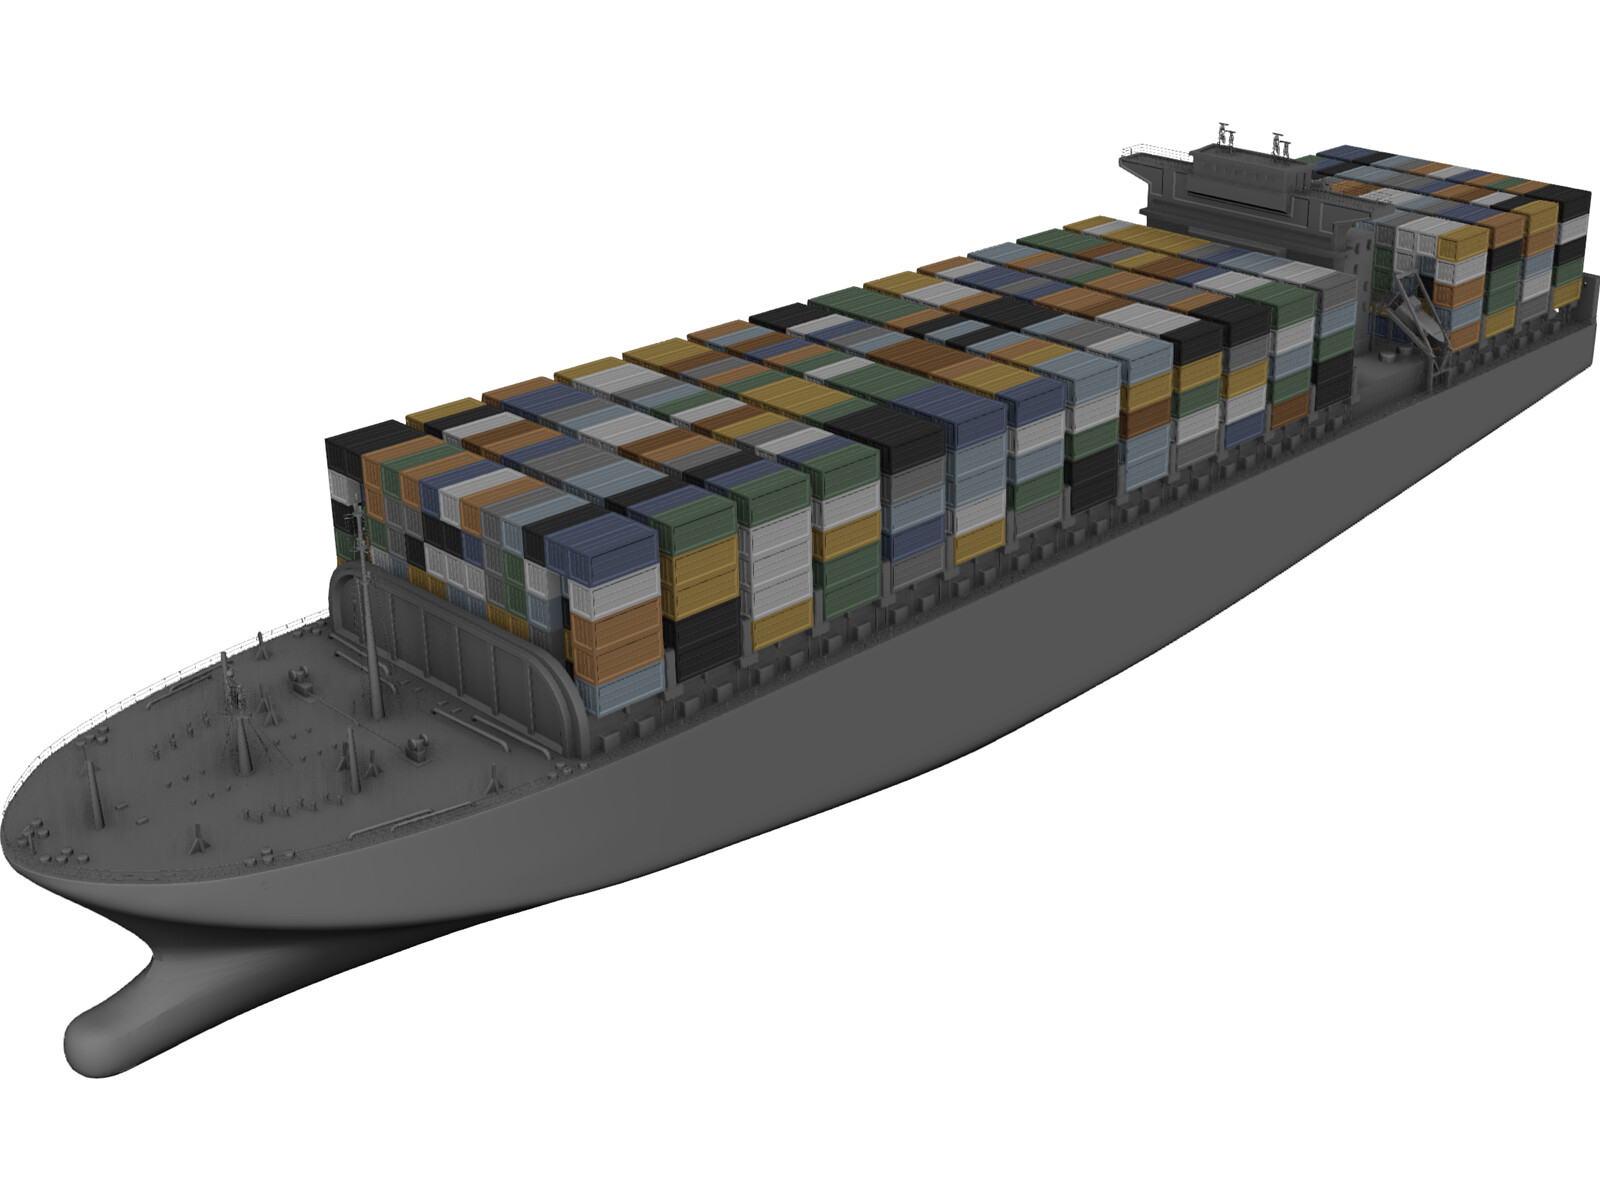 Container Ship 3D Model - 3D CAD Browser